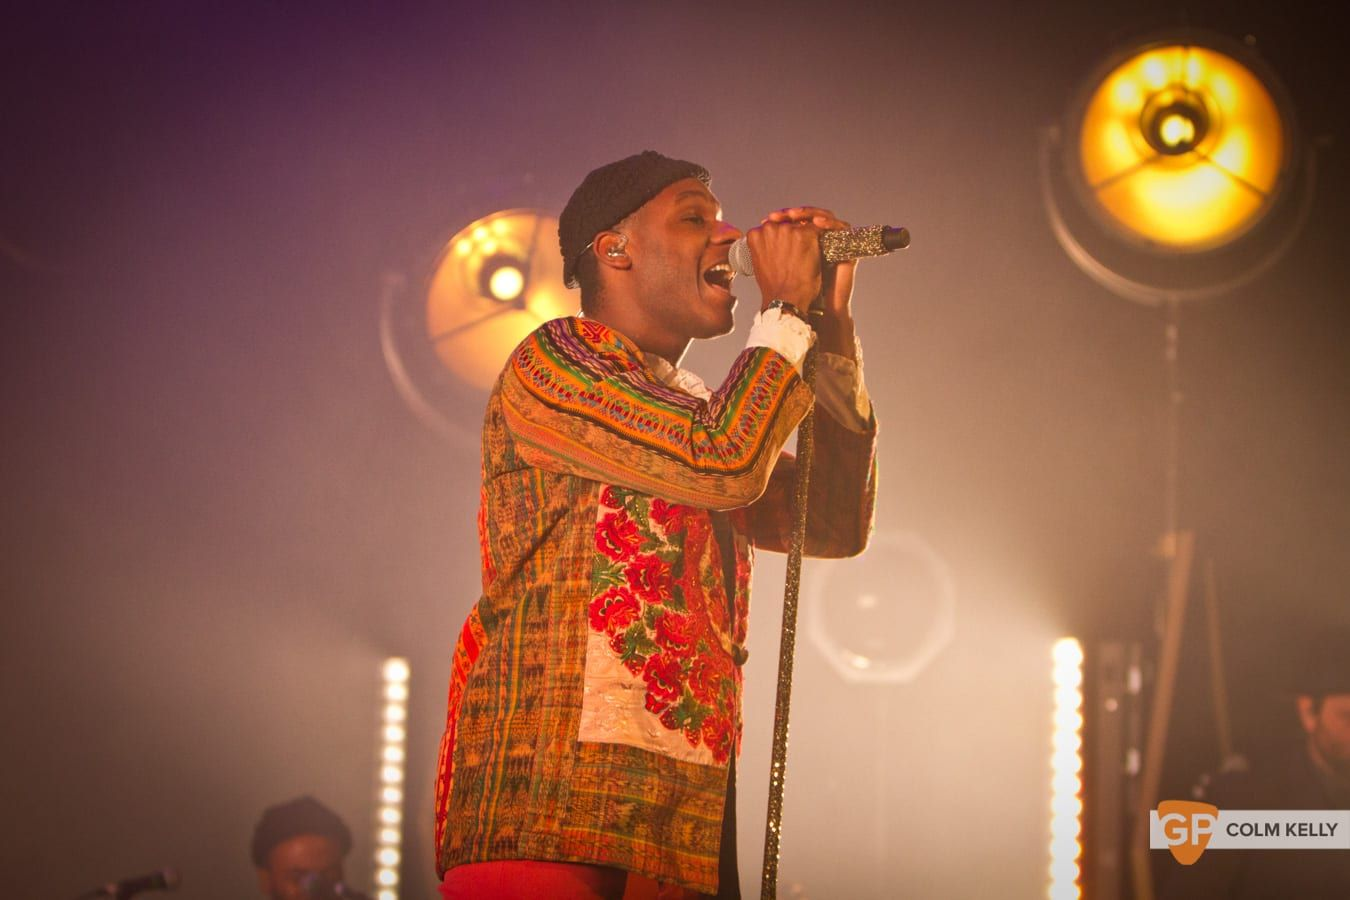 Leon Bridges at The Olympia Theatre, Dublin by Colm Kelly